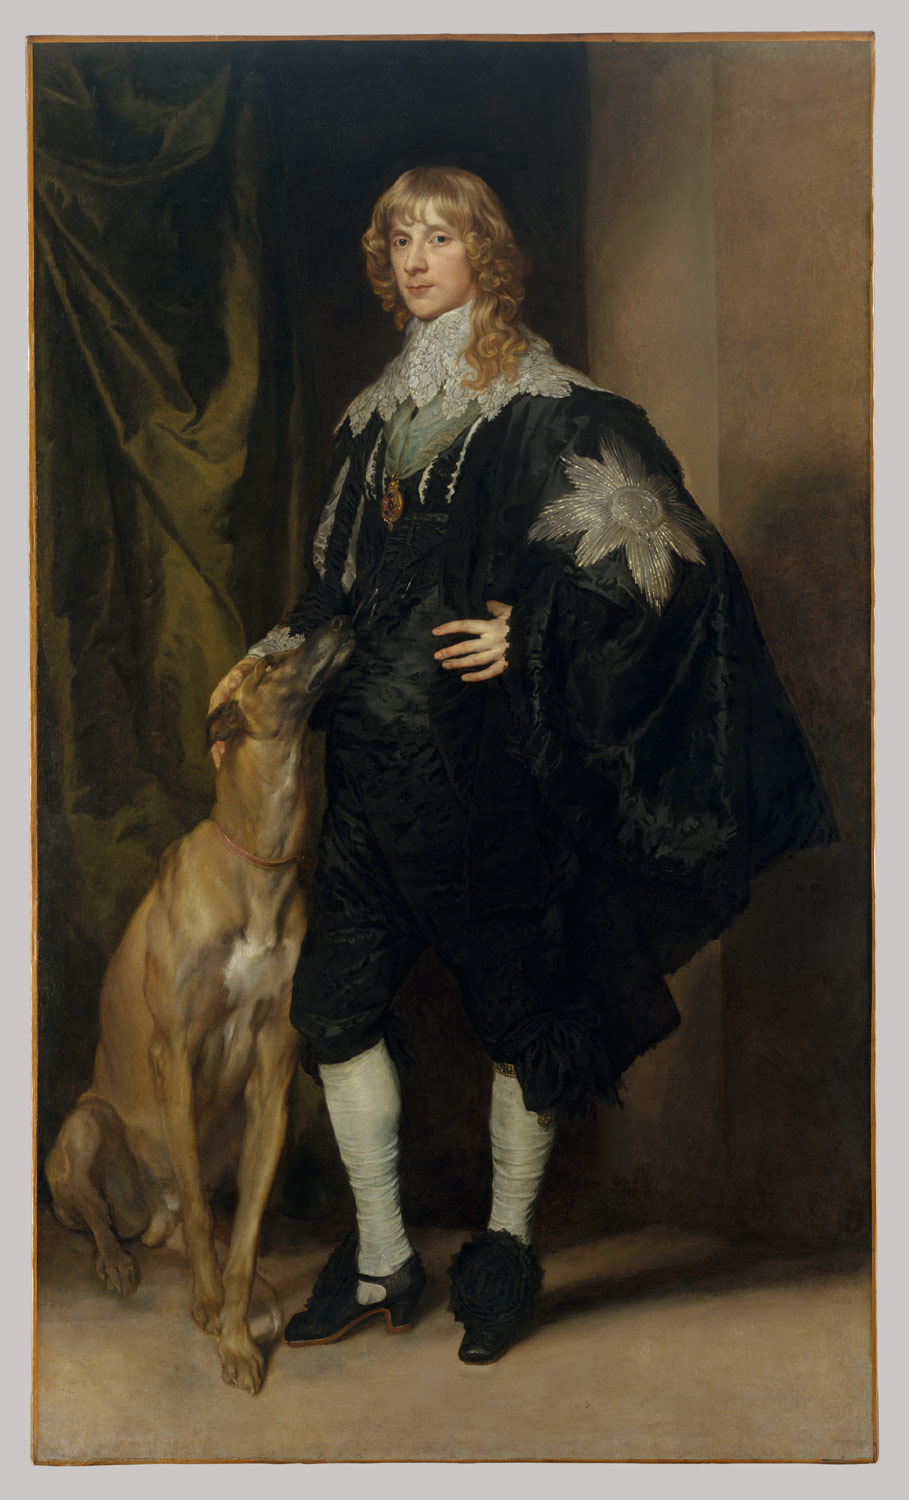 James Stuart (1612-1655), Duke of Richmond and Lennox